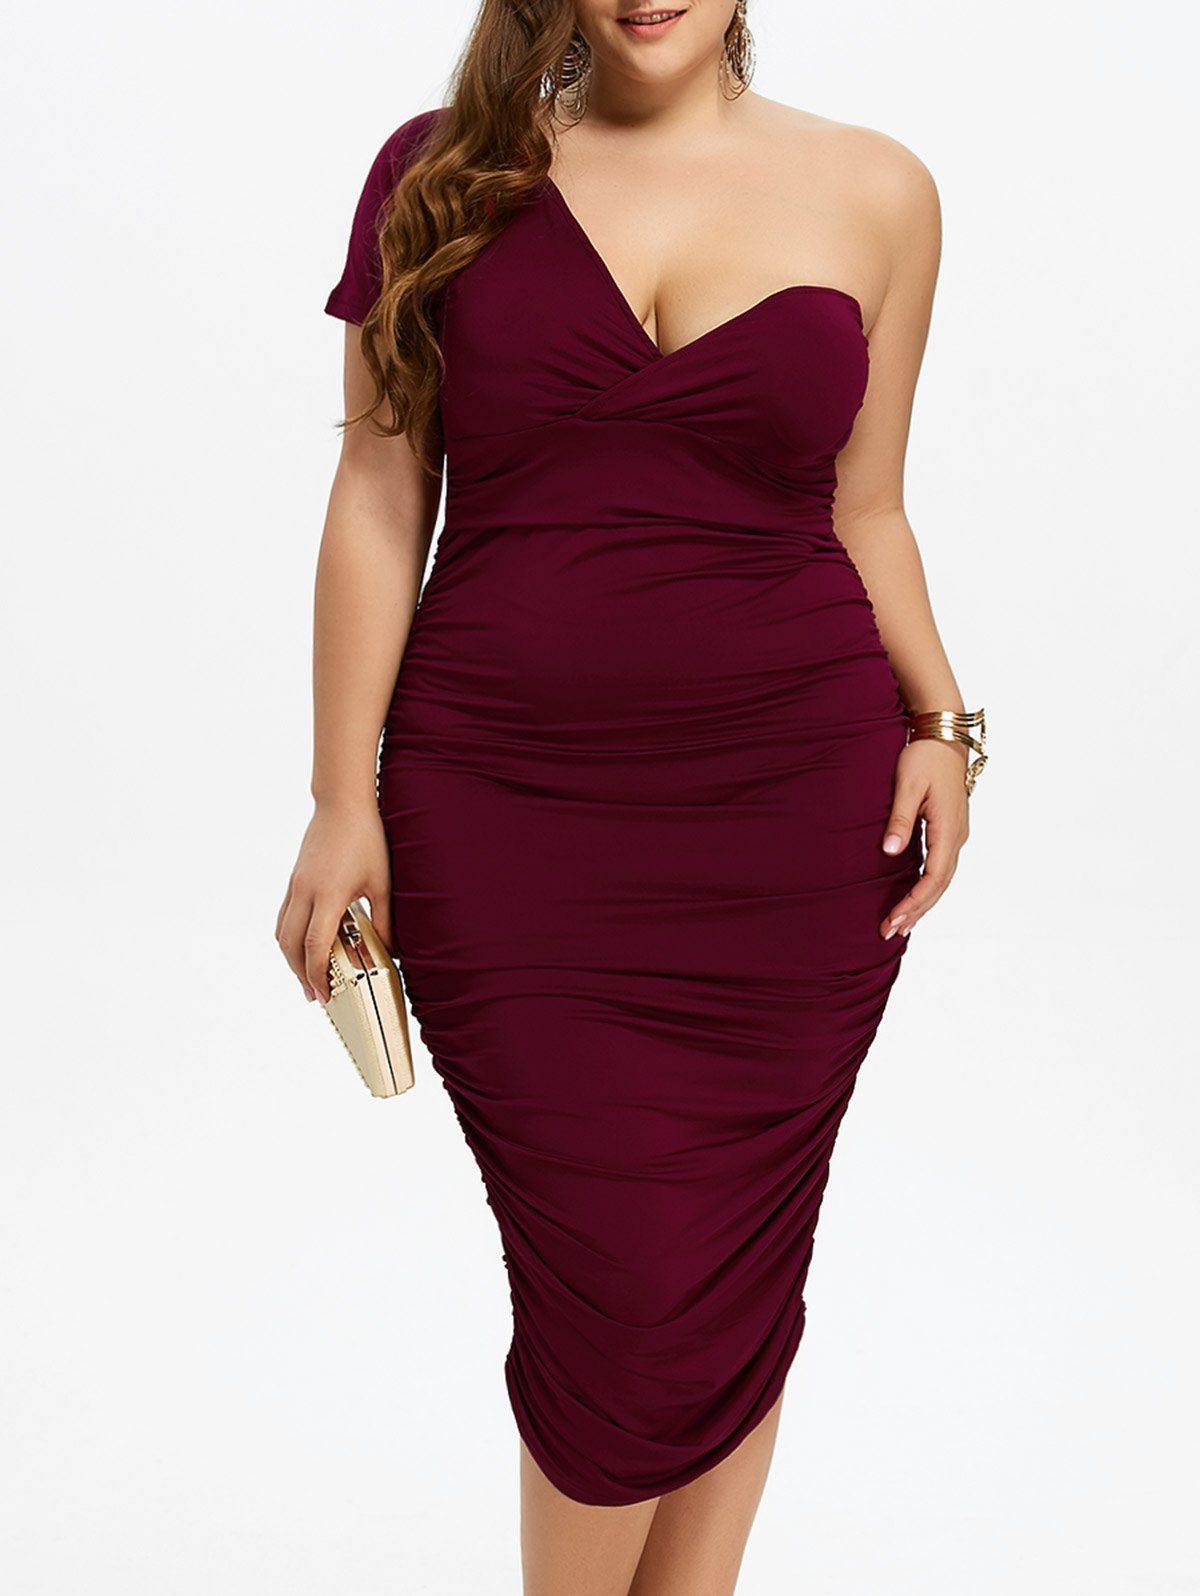 Pioneer wedding dresses  Plus Size Ruched One Shoulder Bodycon Dress  Dress Inspiration